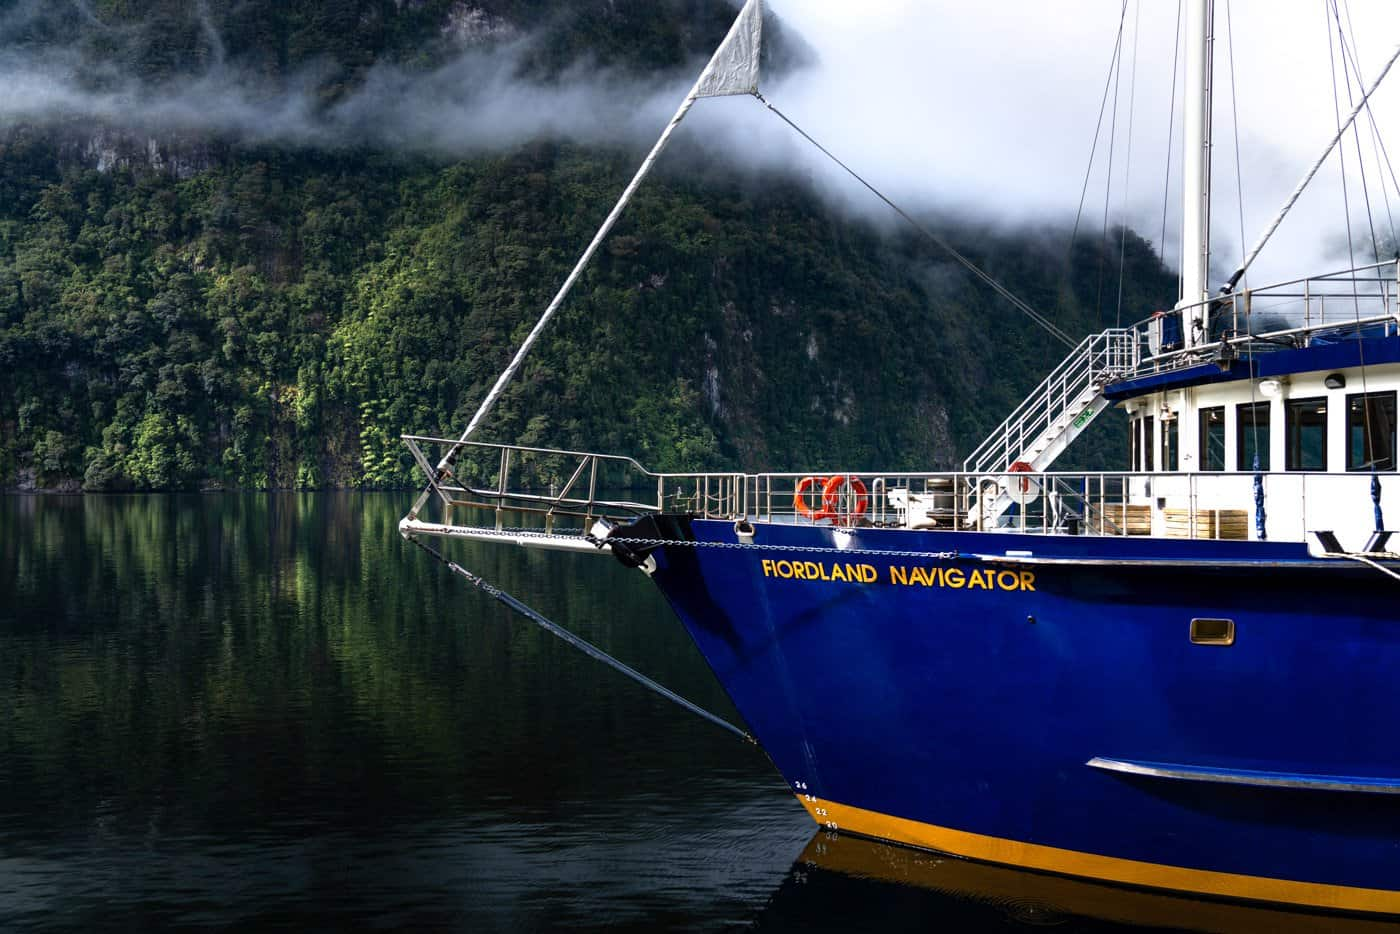 We boarded the beautiful Fjordland Navigator for our Doubtful Sounds overnight cruise.